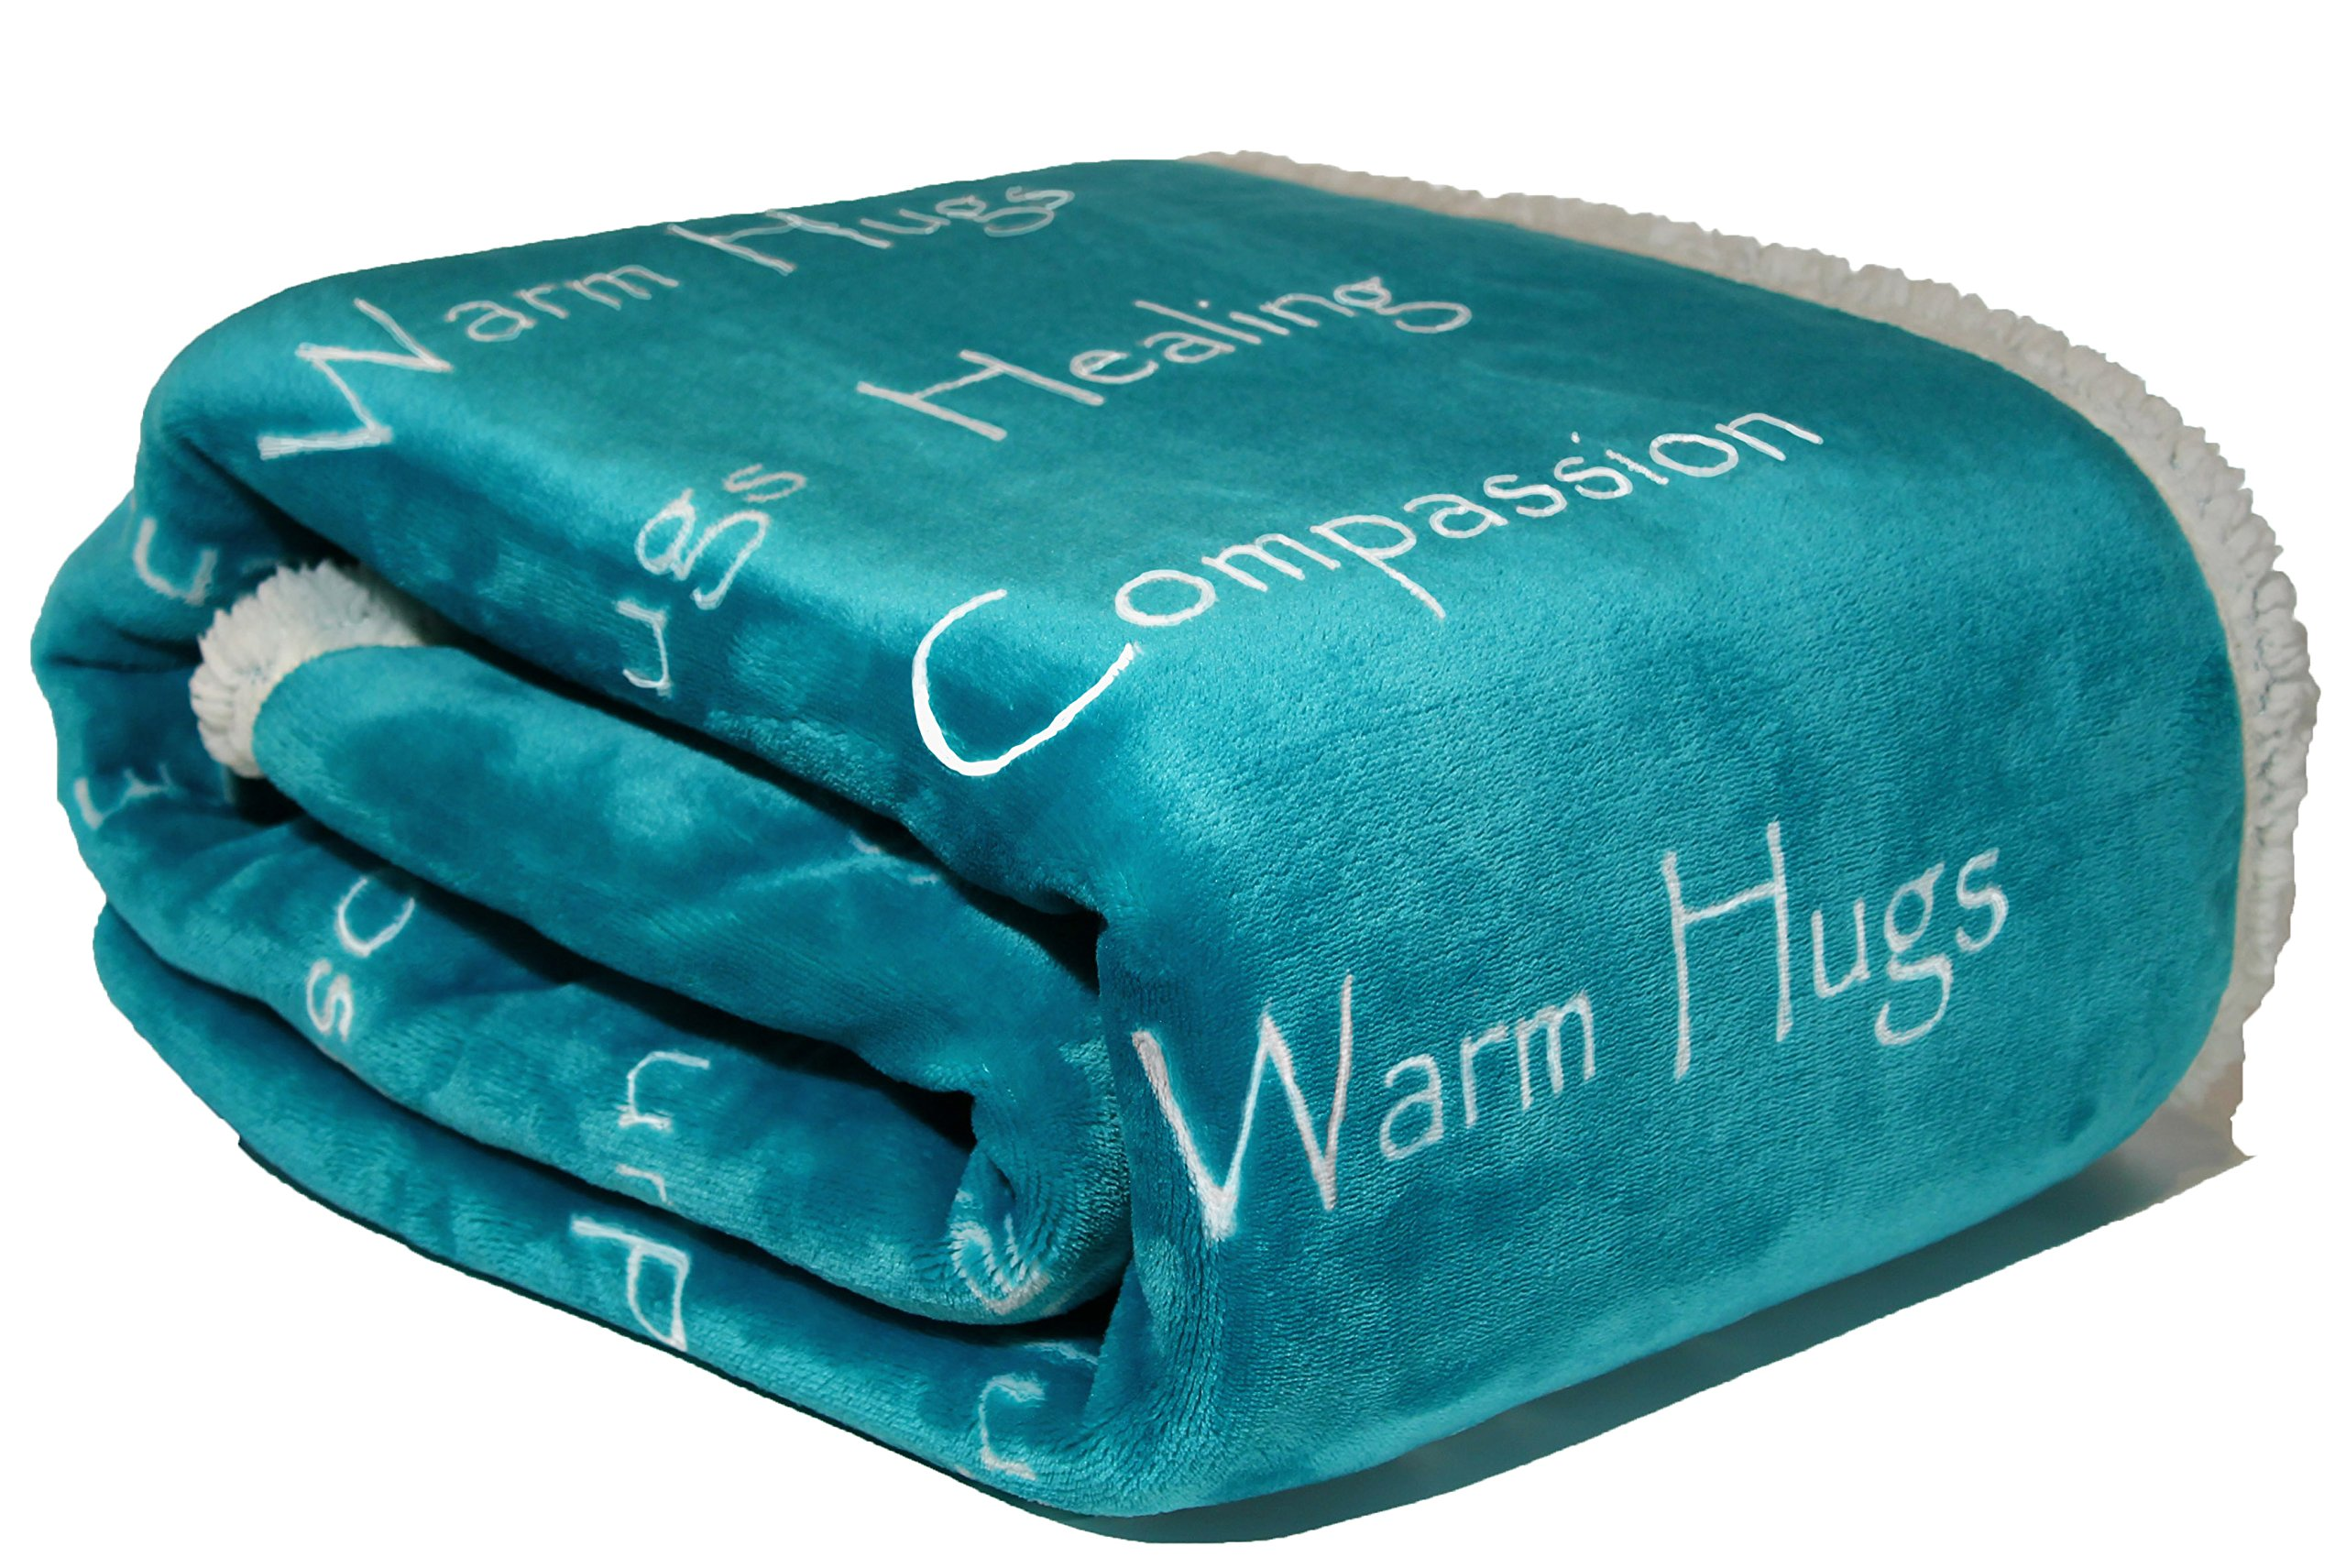 Wolf Creek Blanket Breast Cancer Gift Blanket Get Well Gift for Women Men Warm Hugs Healing Thoughts Positive Energy Courage Soft Fluffy Comfort Caring Throw-Teal